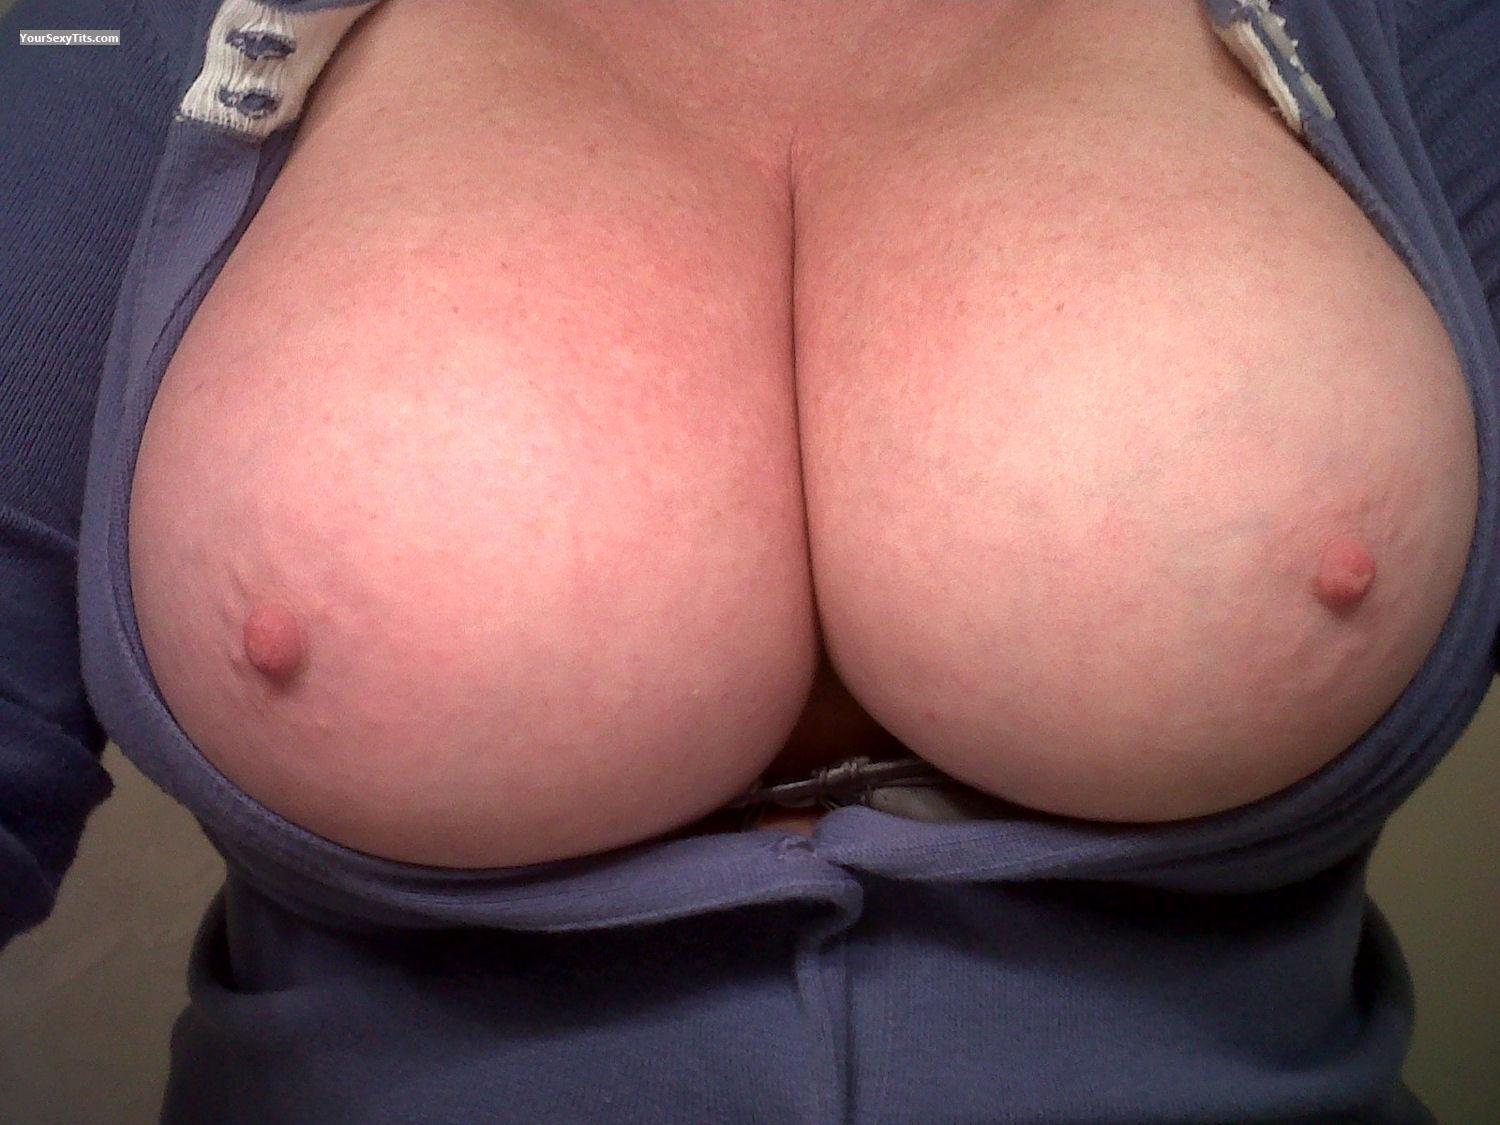 Tit Flash: My Very Big Tits (Selfie) - Nirvana from United States